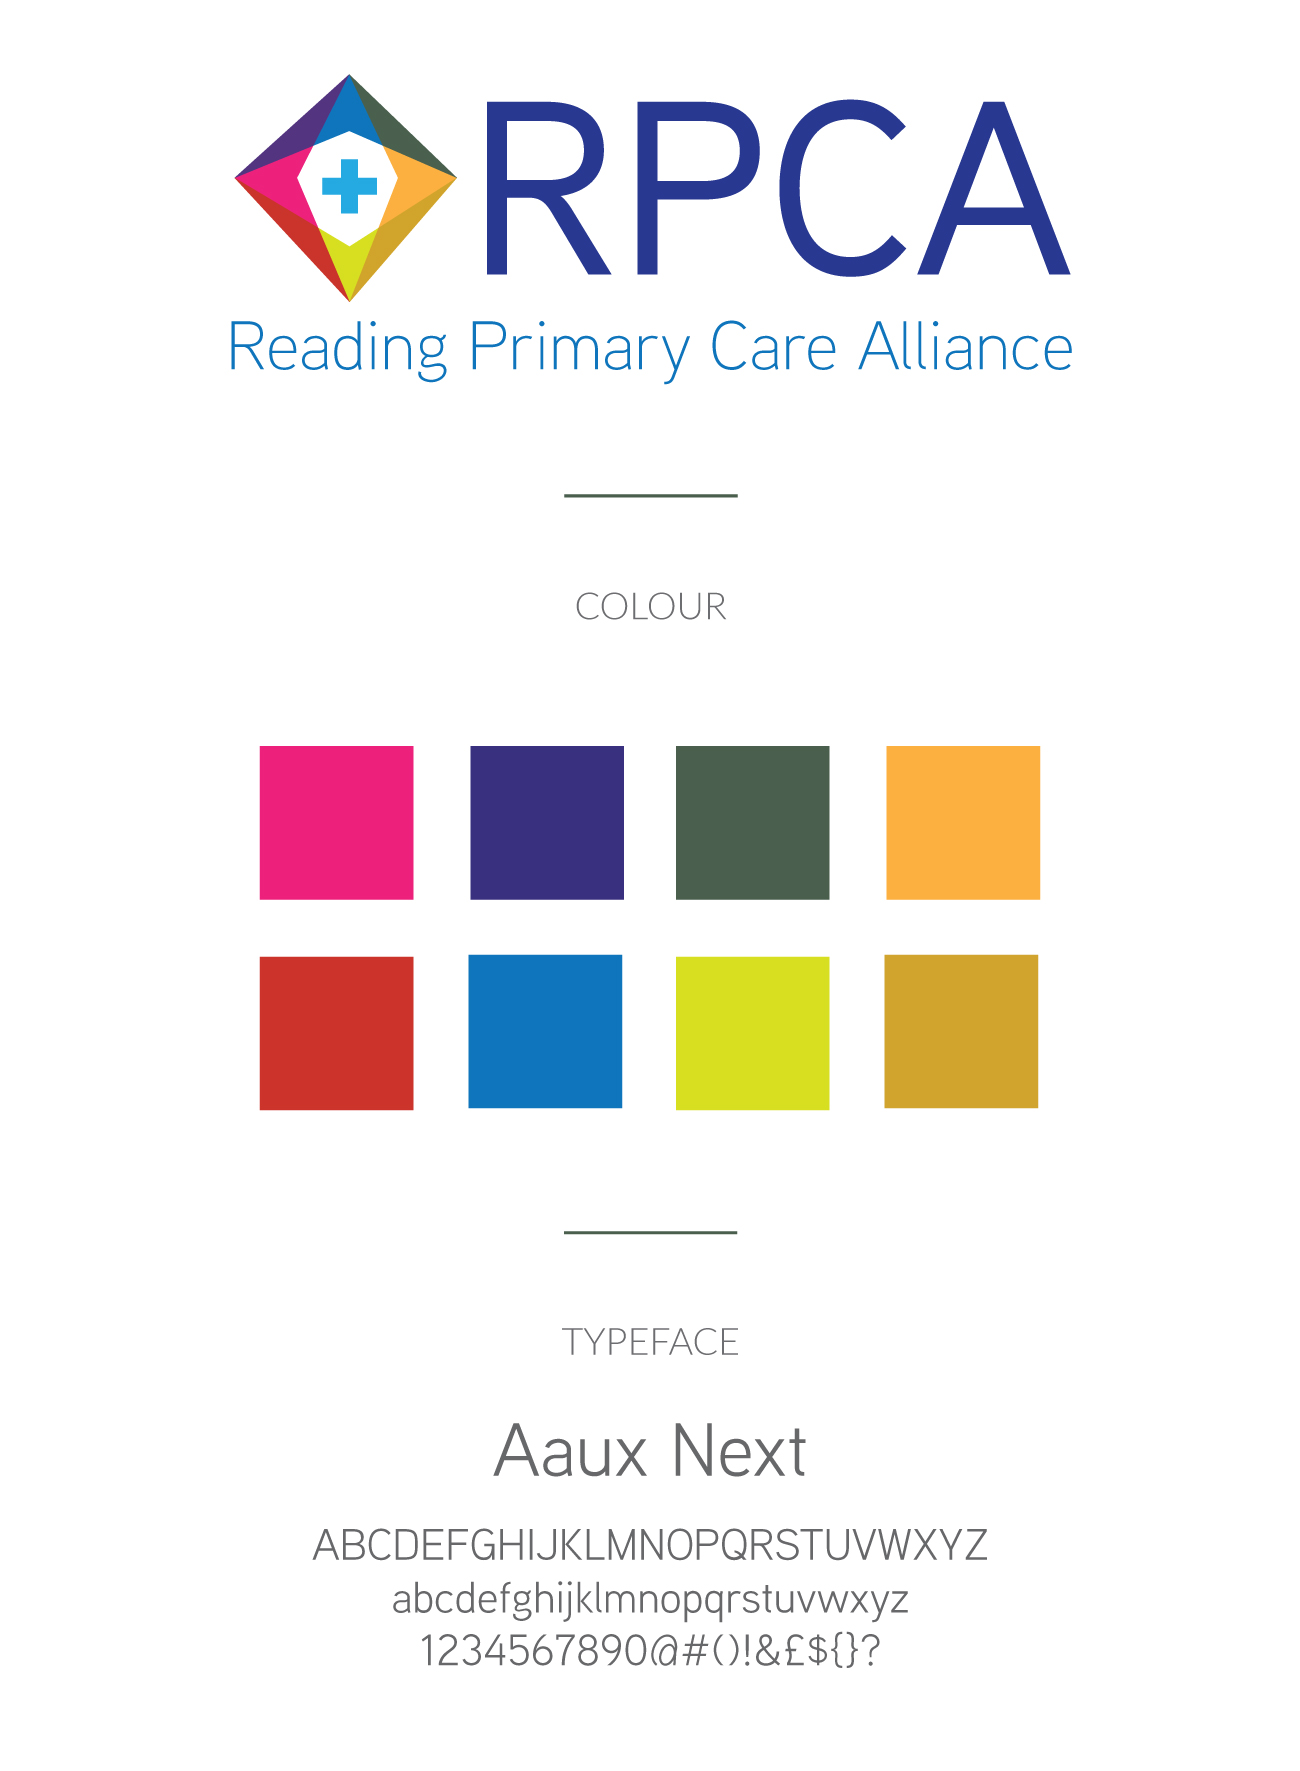 brand identity - style guide for Reading Primary Care Alliance